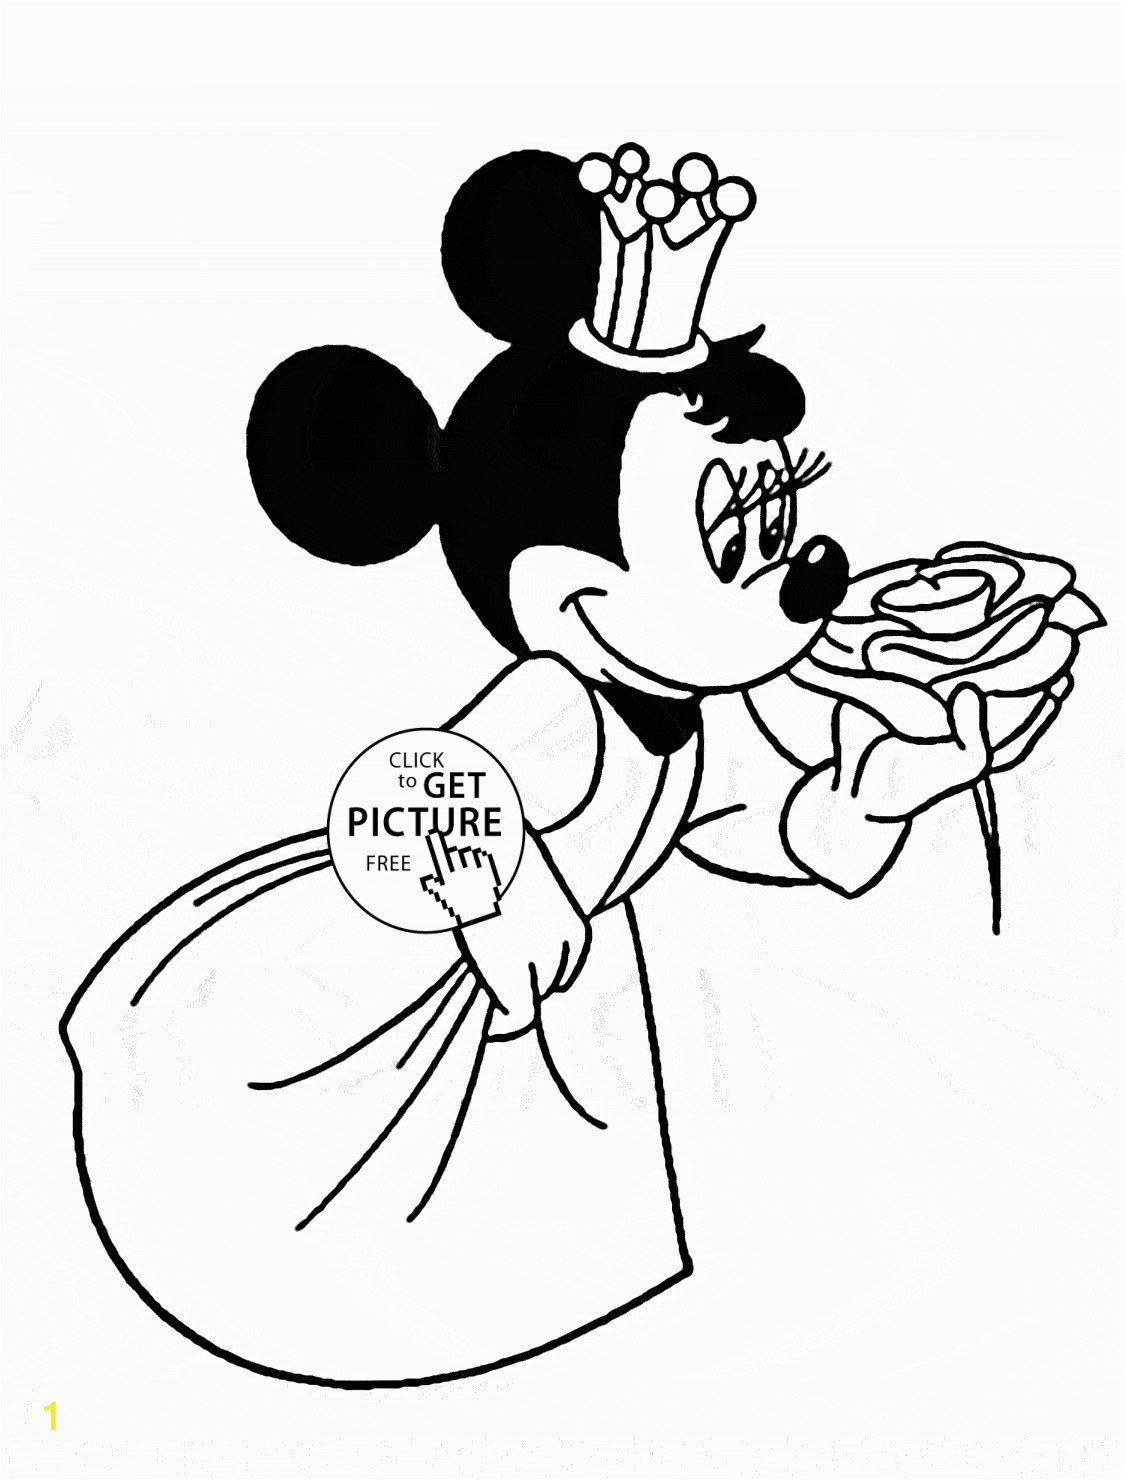 Coloring Pages Disney Minnie Mouse Minnie Mouse Princess Disney Coloring Page for Kids for